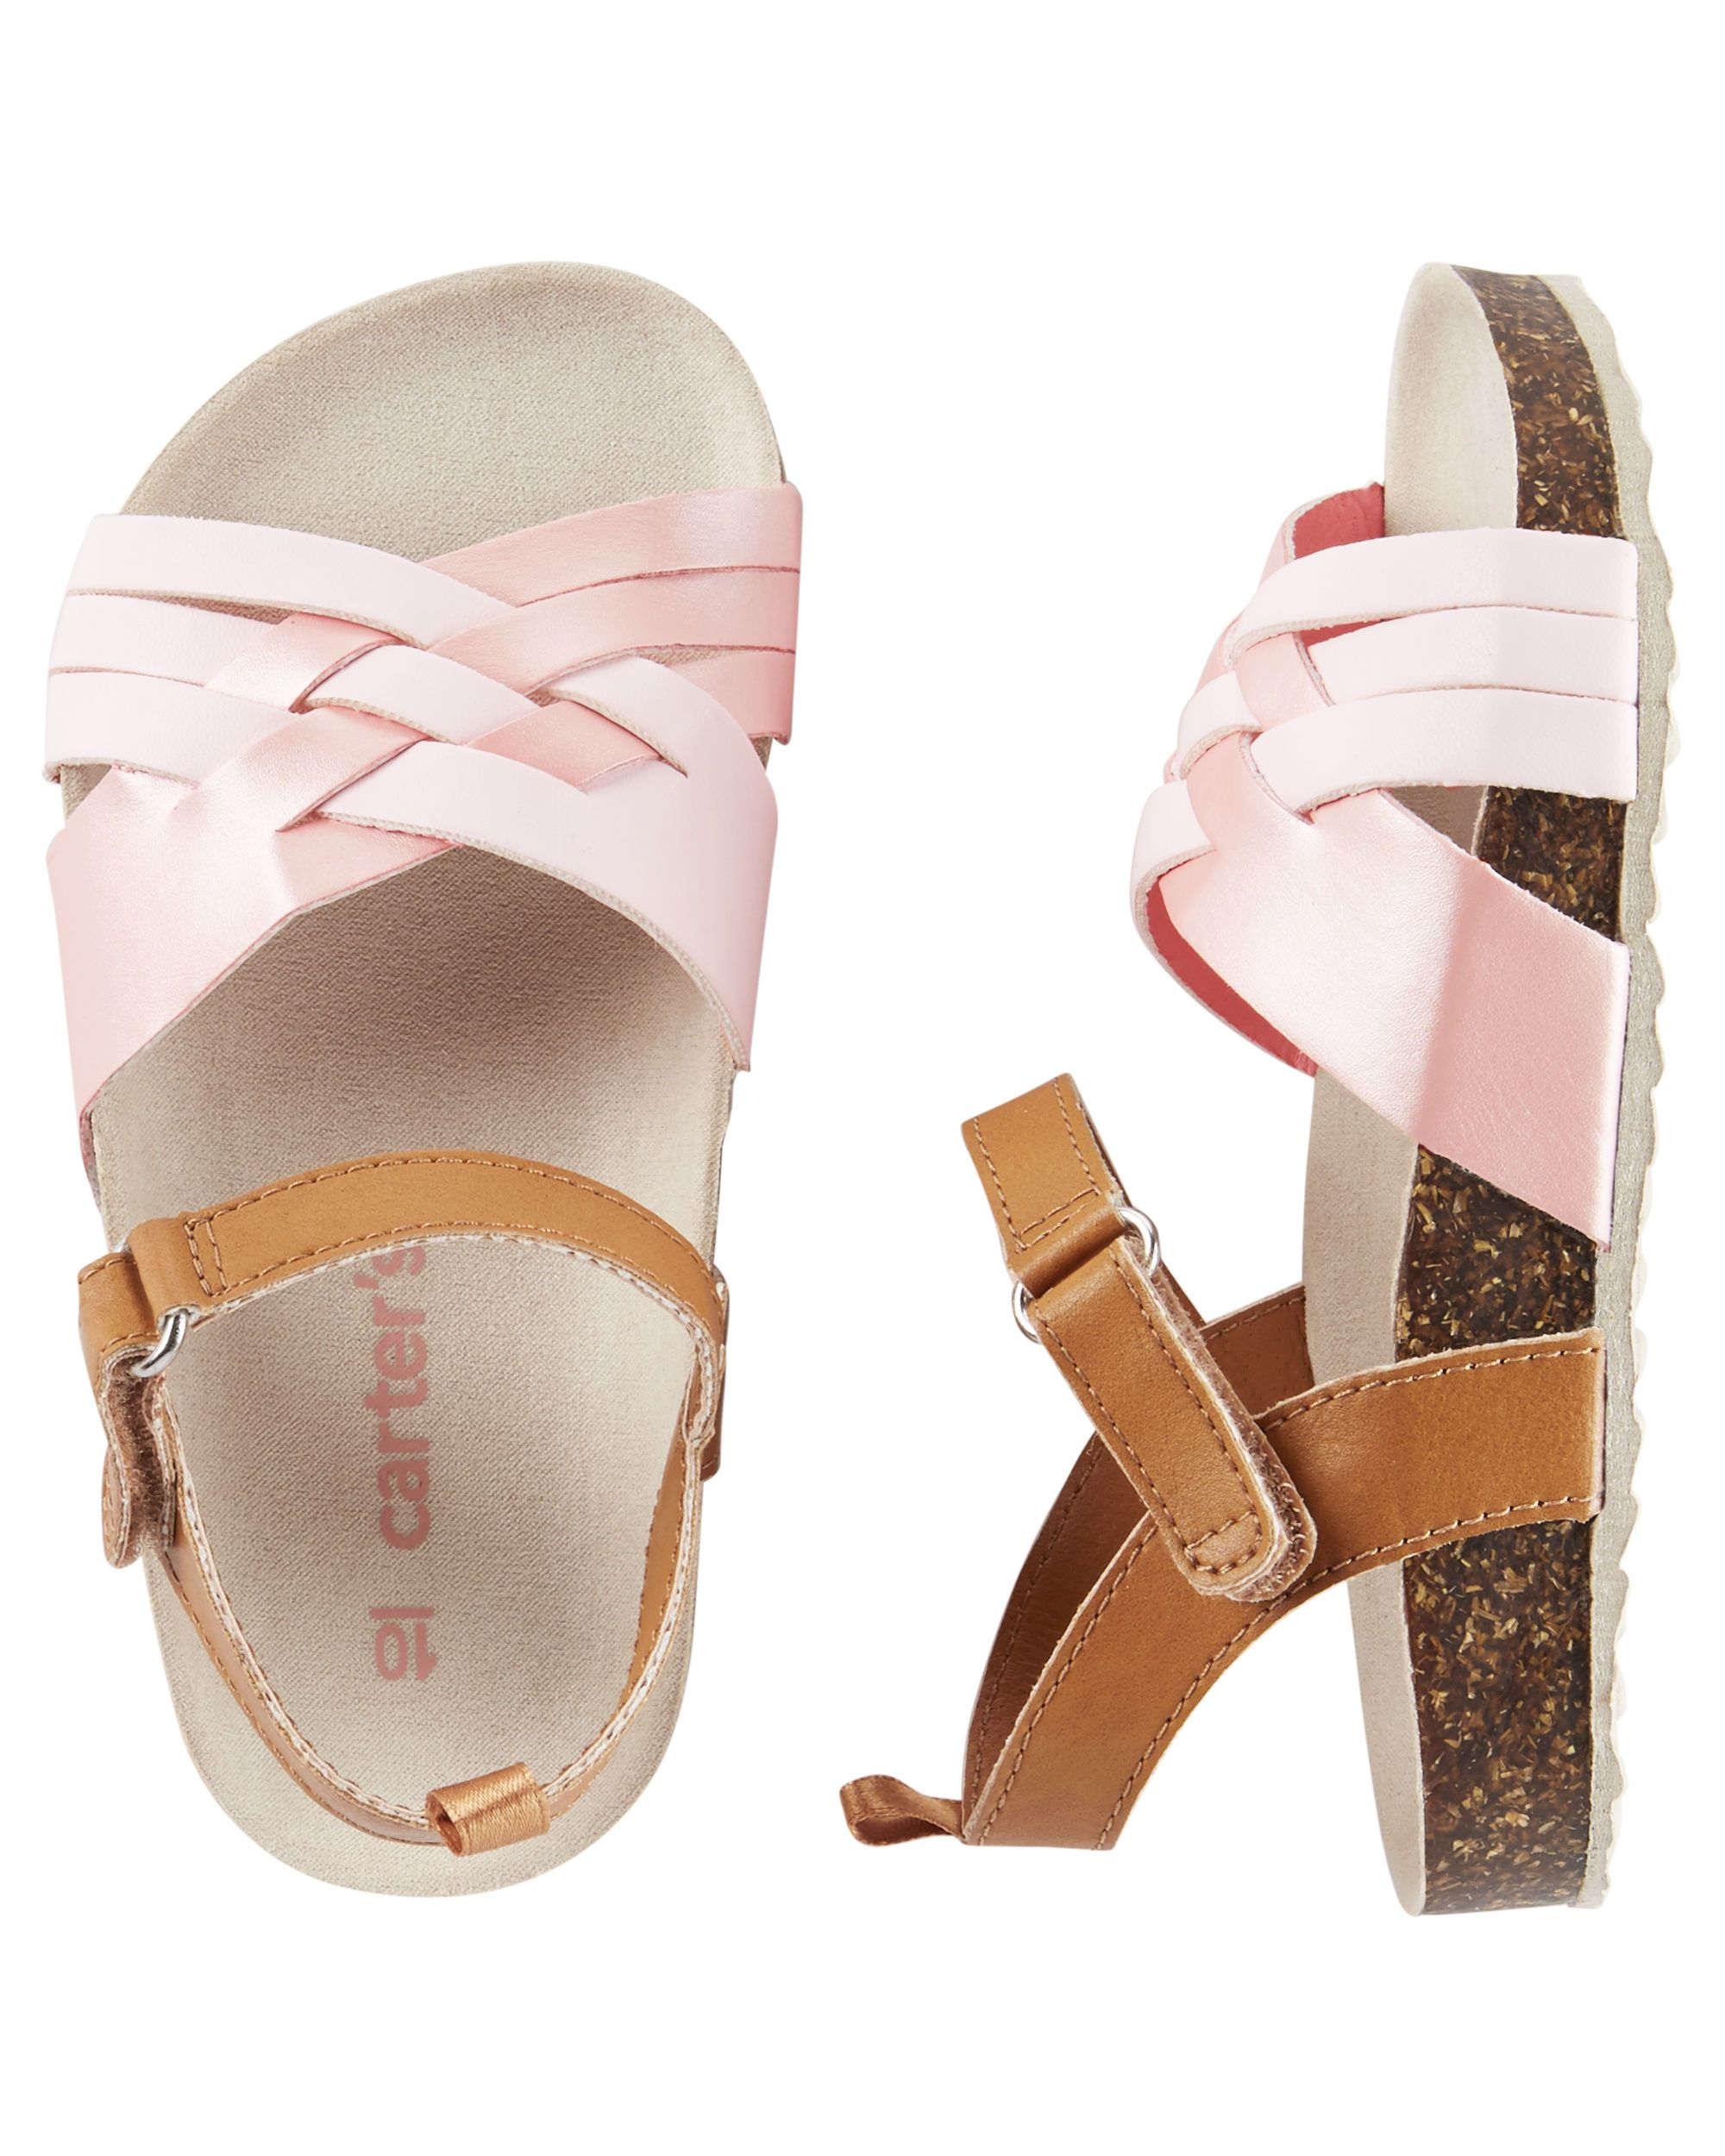 b462ab40b228 Toddler Girl Carter s Strappy Sandals